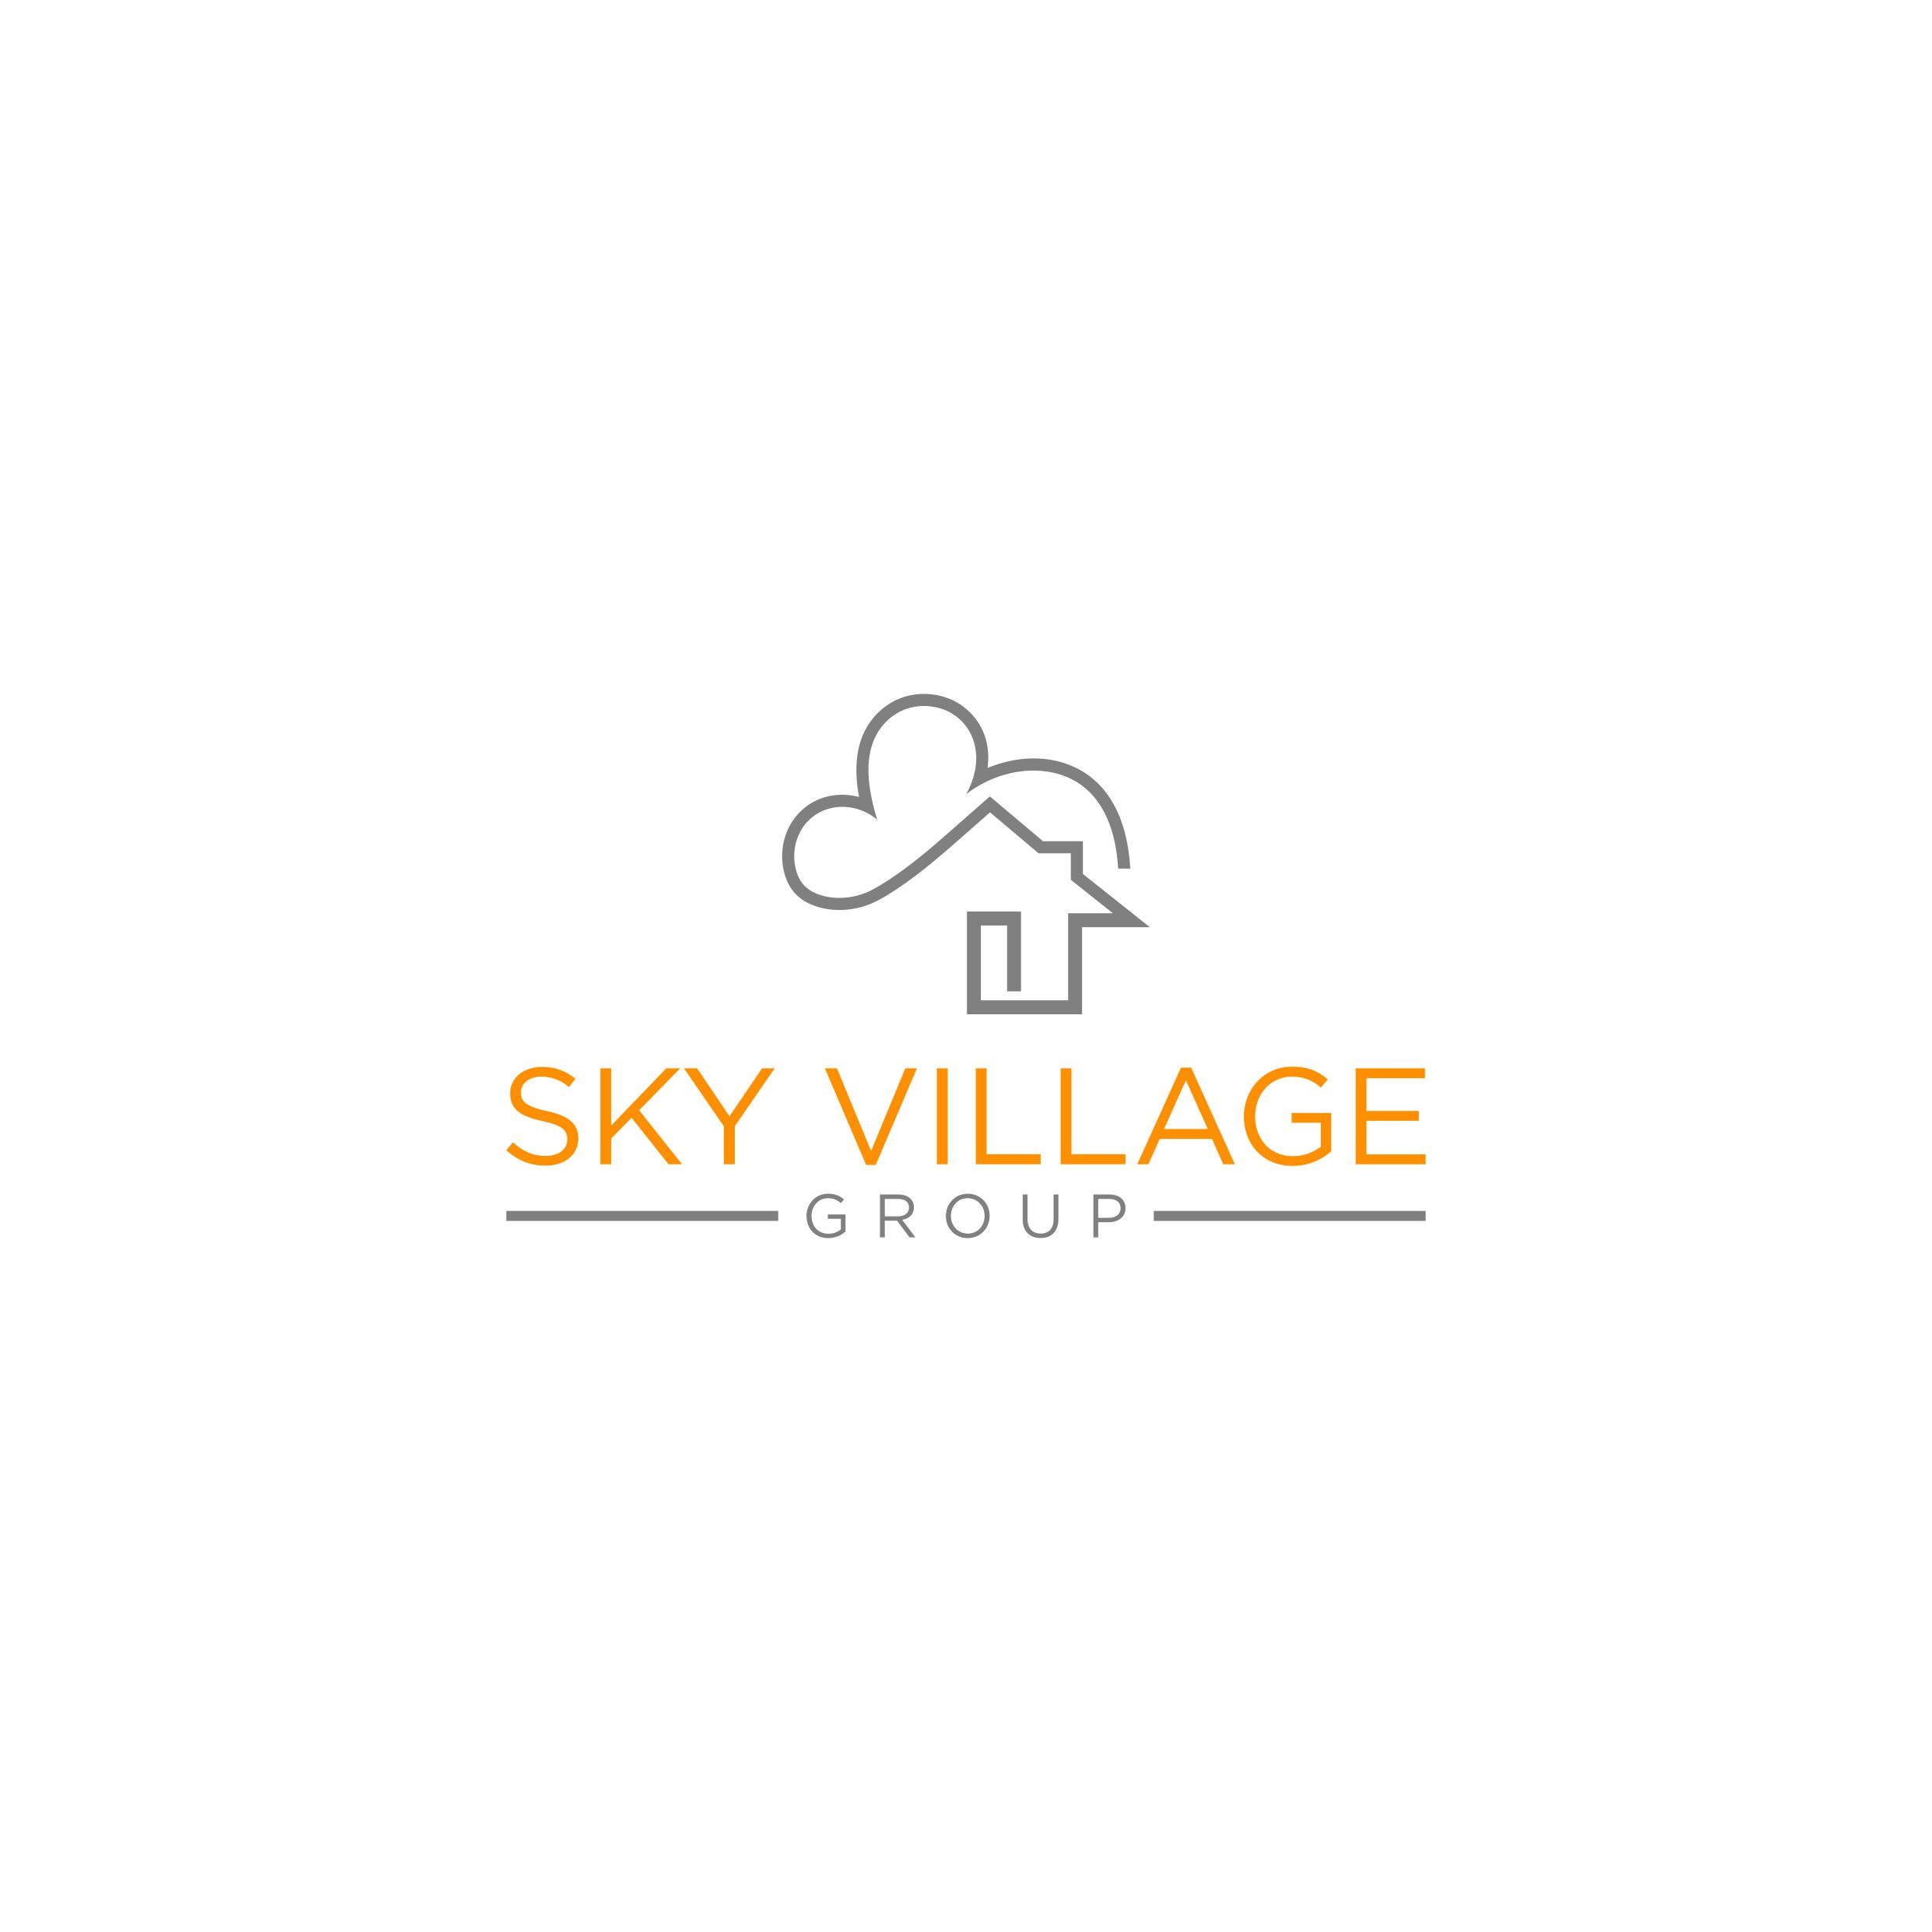 SKY VILLAGE GROUP